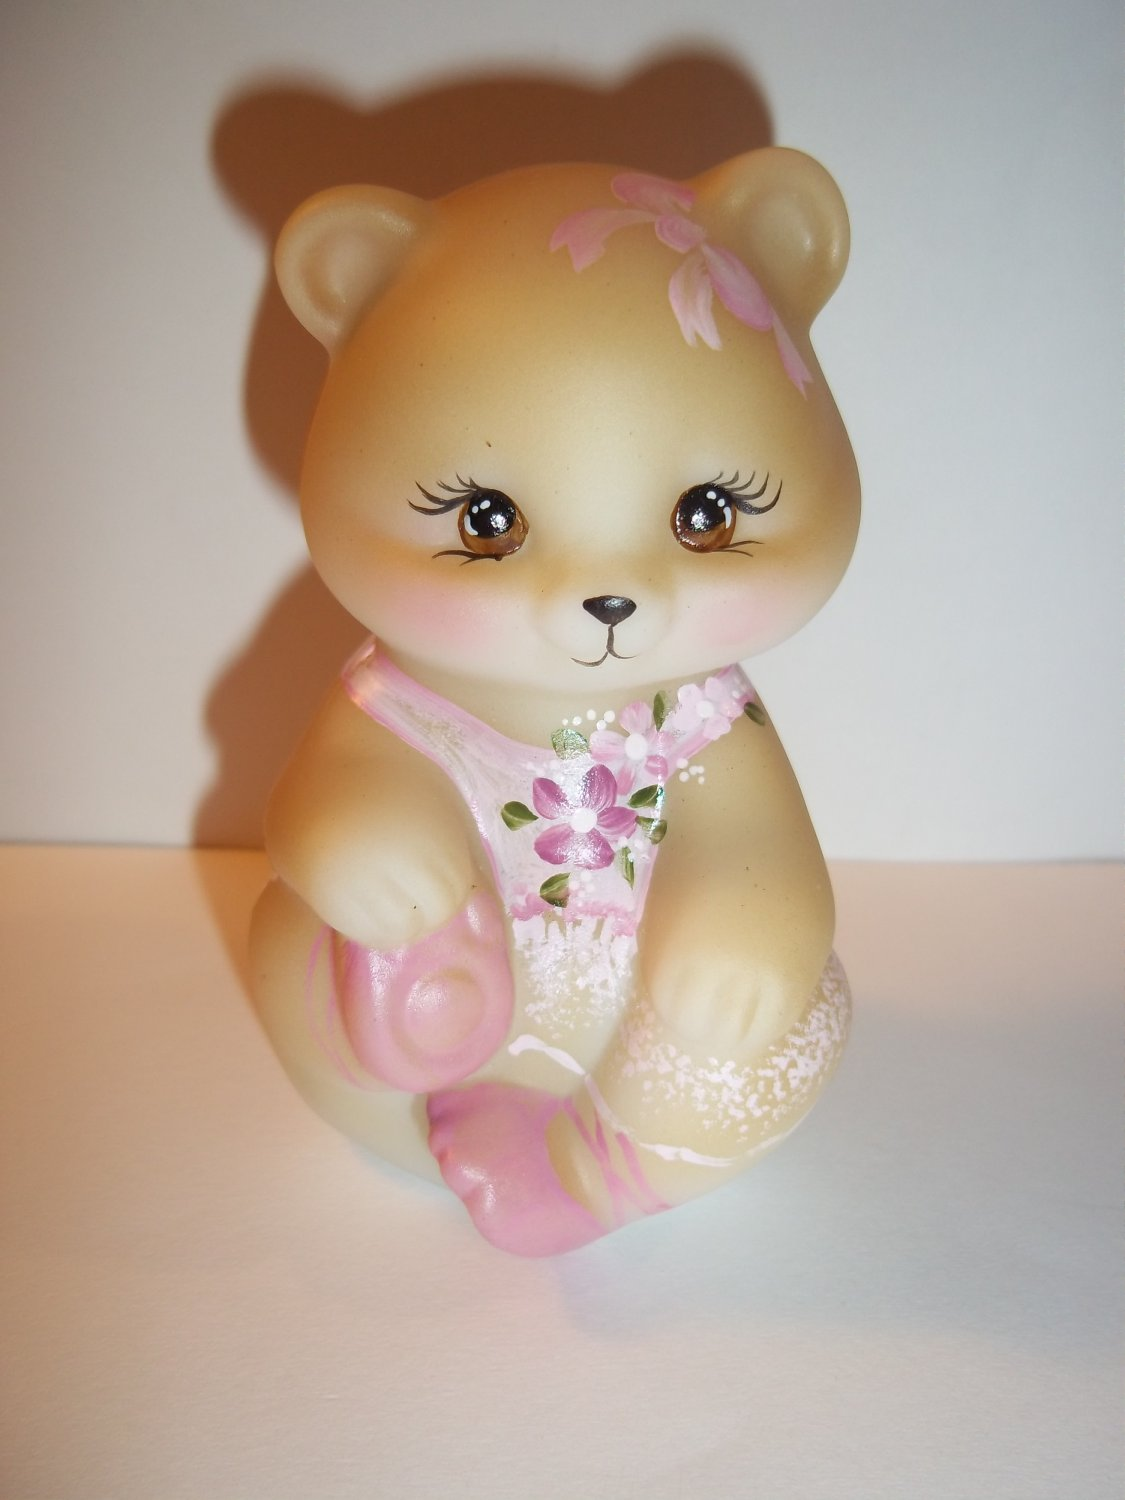 Fenton Glass Ballerina in Pink Tutu Sitting BEAR Figurine GSE M. Kibbe #2/13